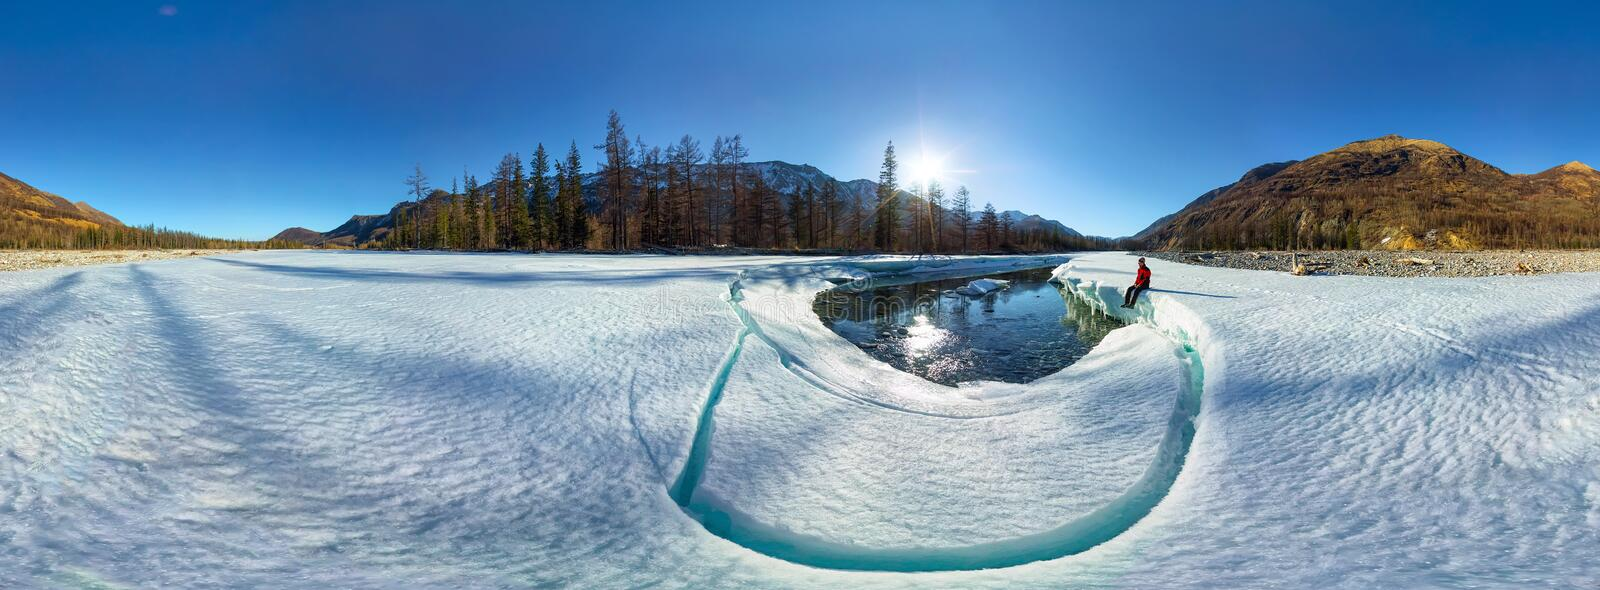 Cylindrical panorama of a man on ice melting river royalty free stock photo